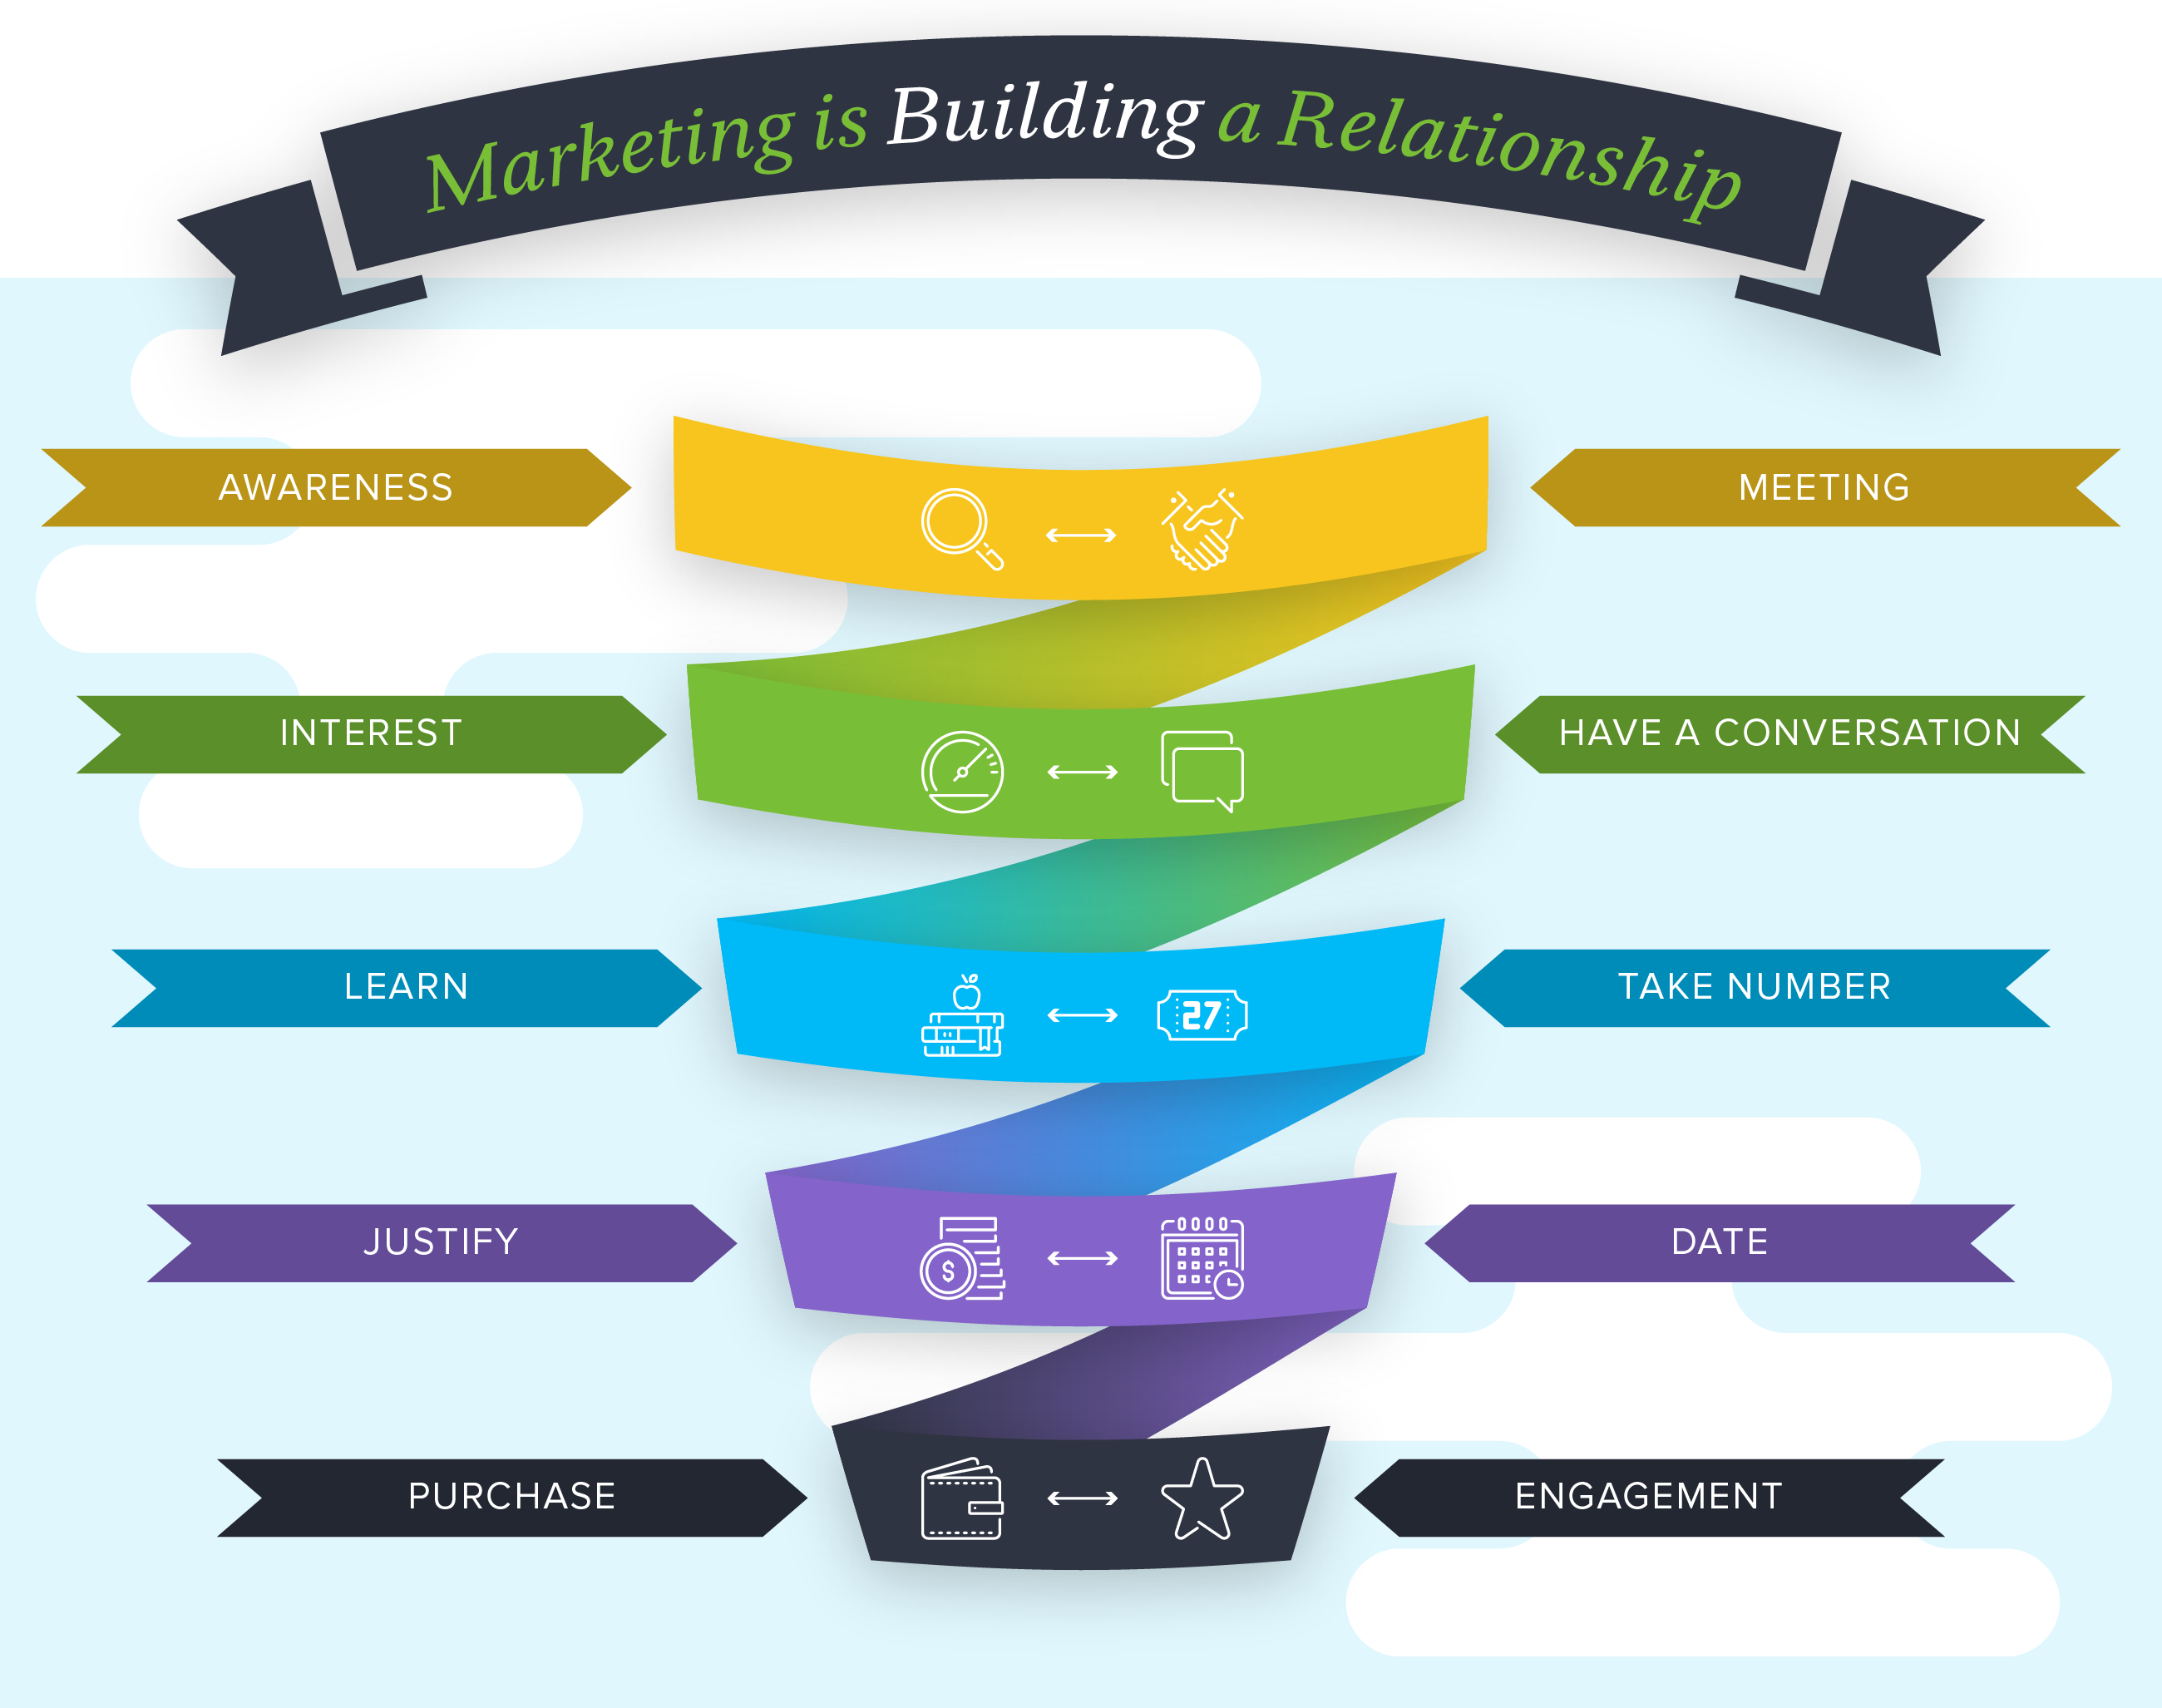 ms-3536-graphic-for-blog-post-marketing-is-building-a-relationship.png